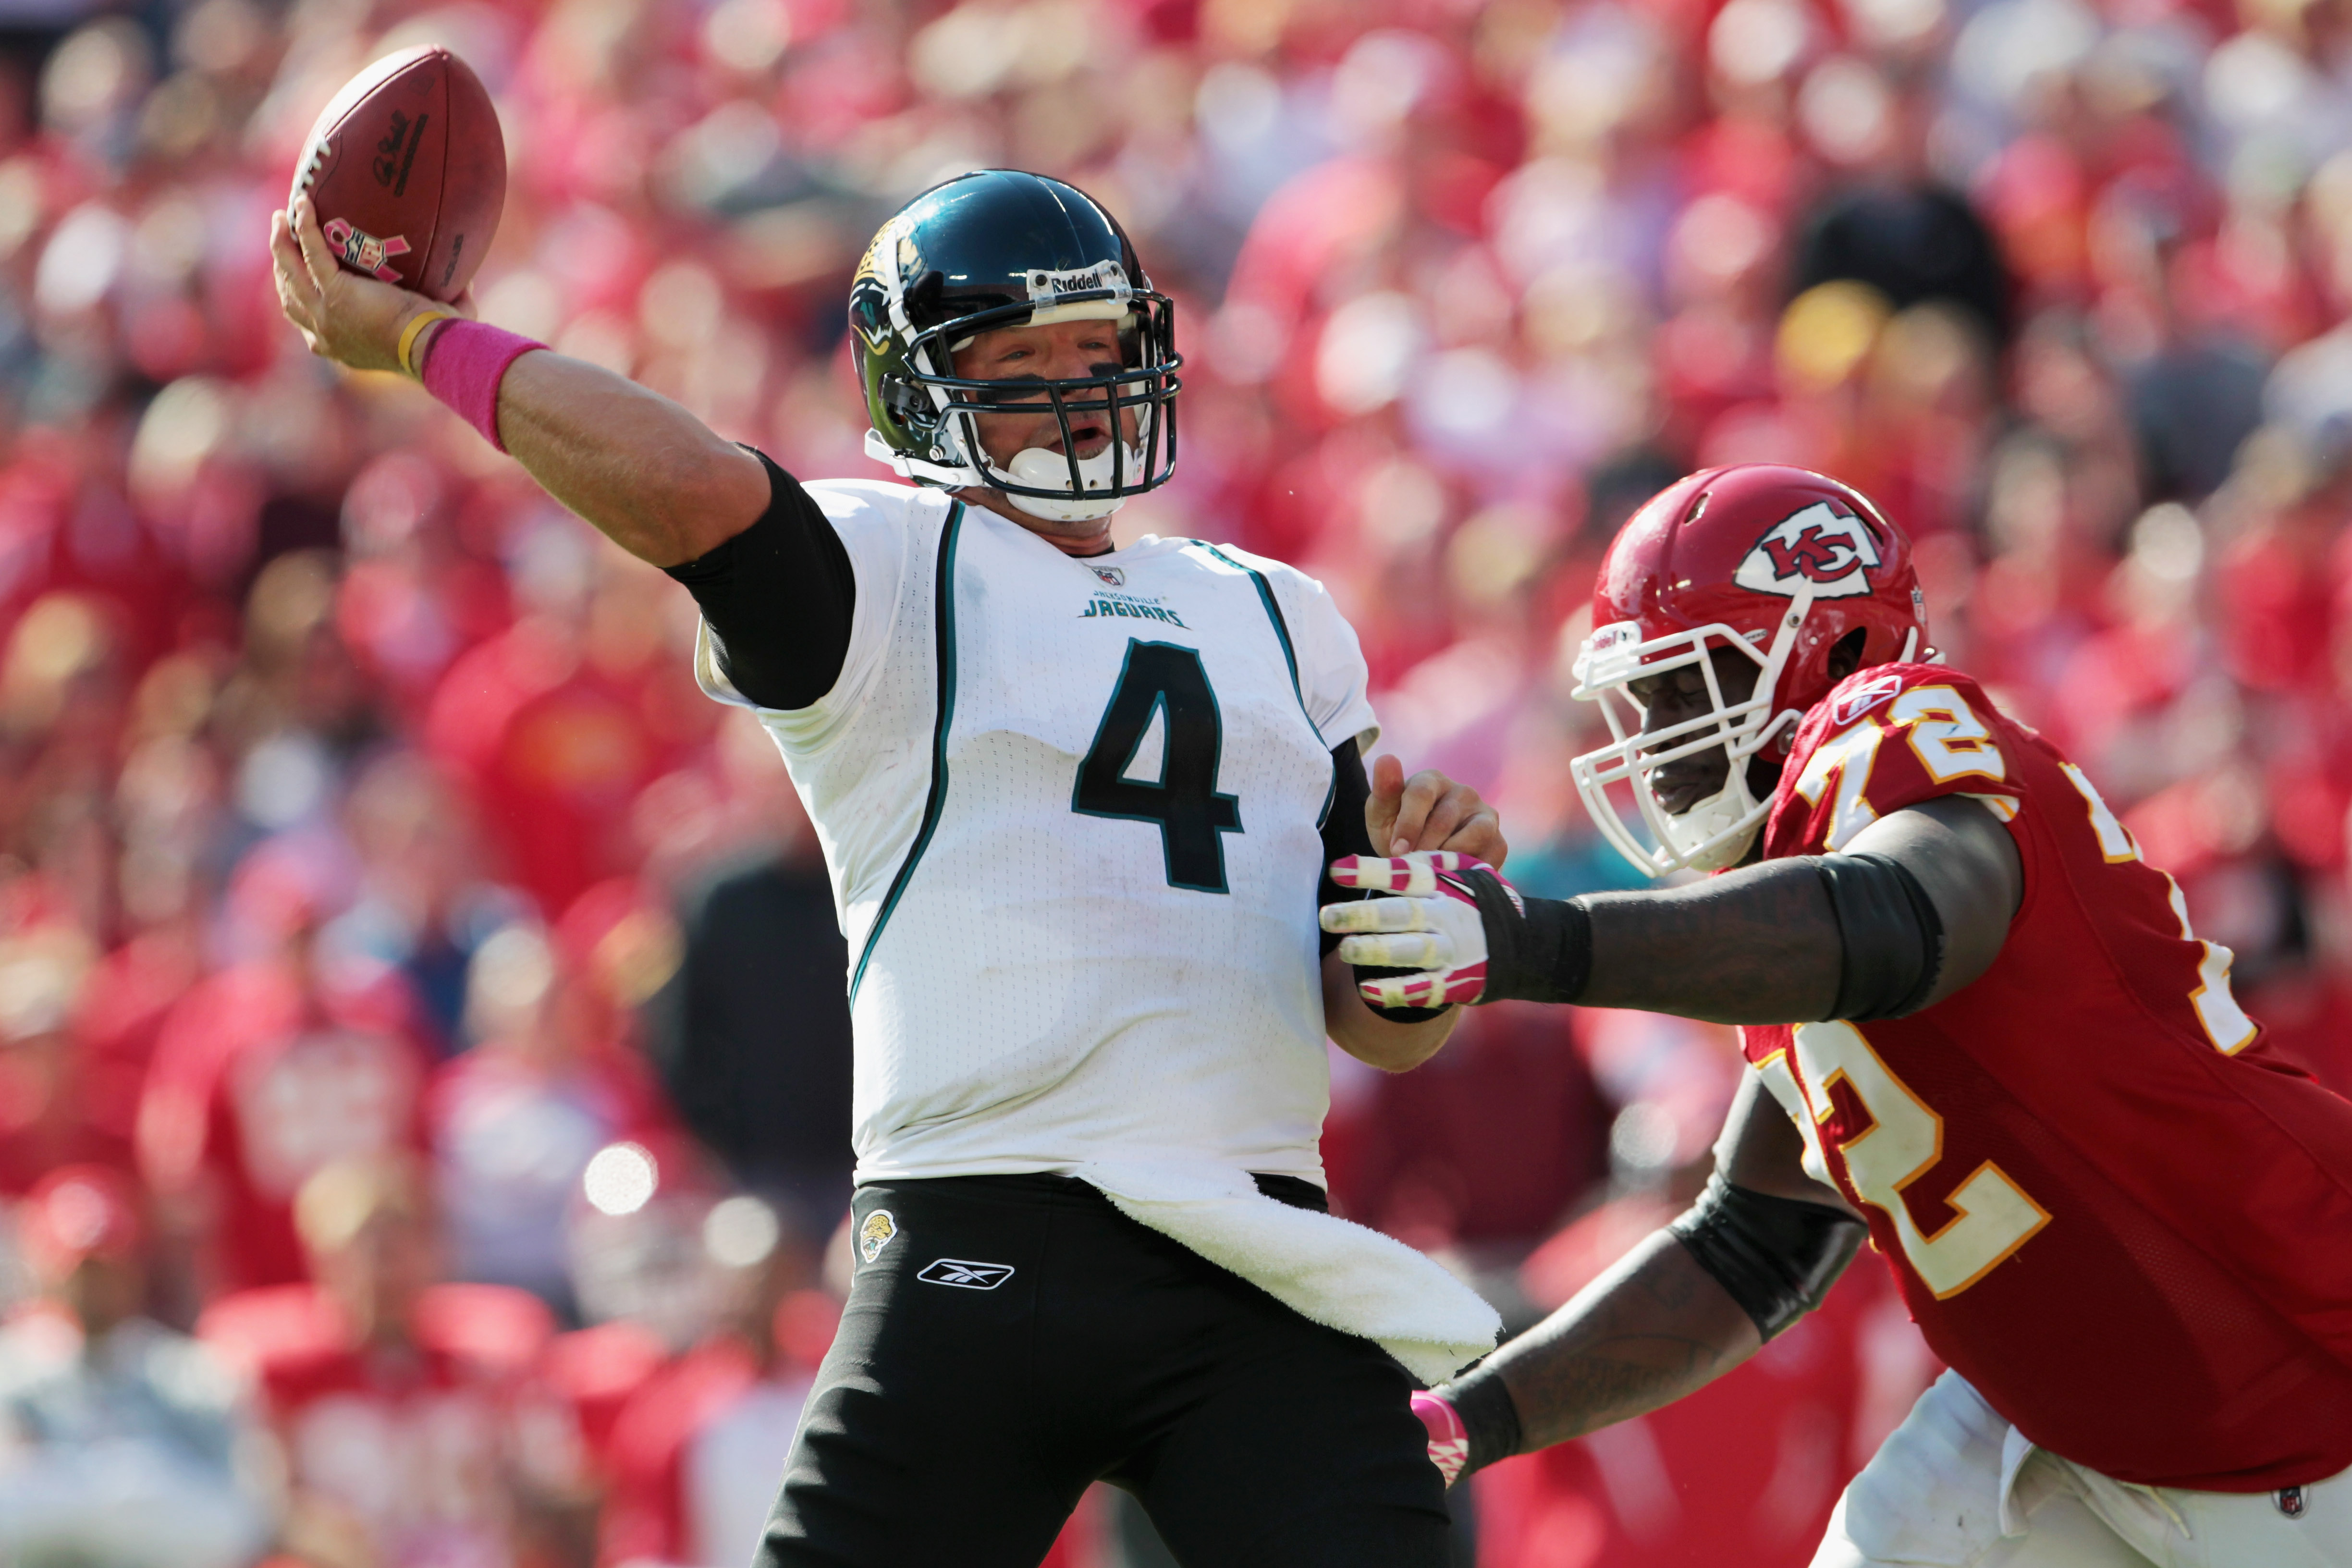 KANSAS CITY, MO - OCTOBER 24:  Quarterback Todd Bouman #4 of the Jacksonville Jaguars passes as Glenn Dorsey #72 of the Kansas City Chiefs defends during the game on October 24, 2010 at Arrowhead Stadium in Kansas City, Missouri.  (Photo by Jamie Squire/G